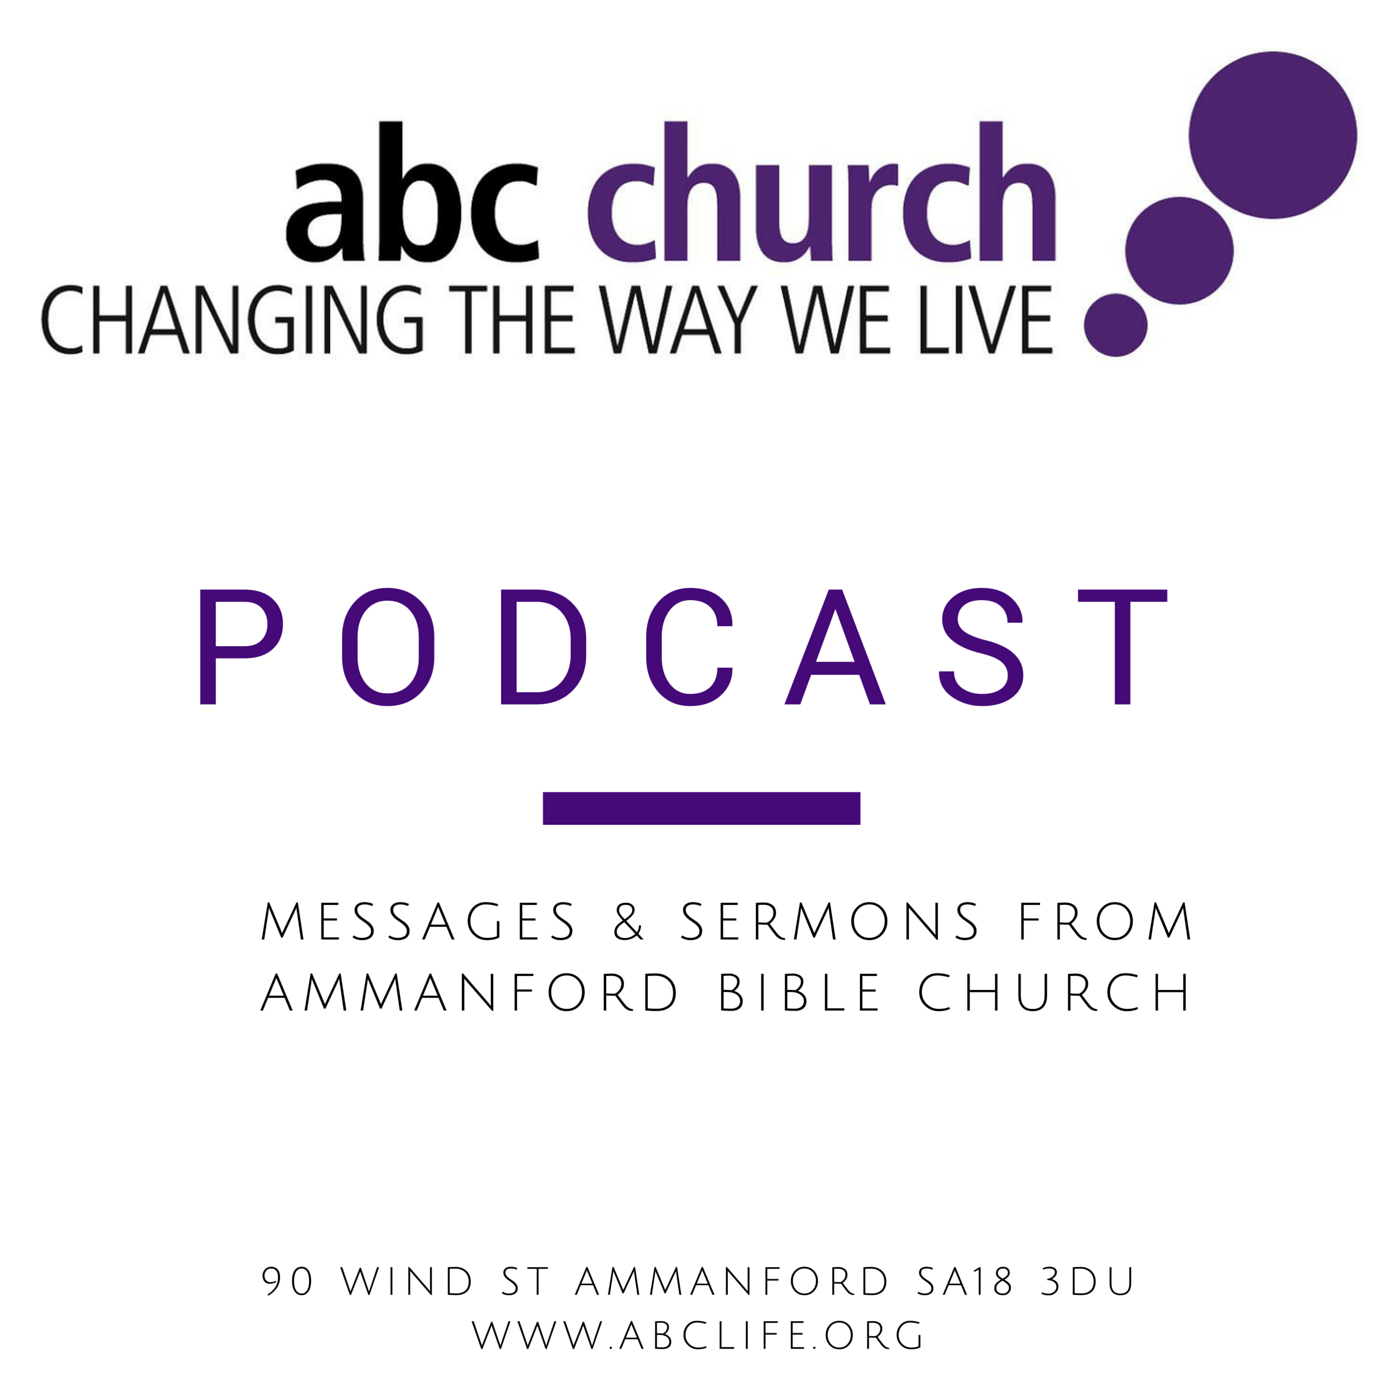 ABC Church Podcast